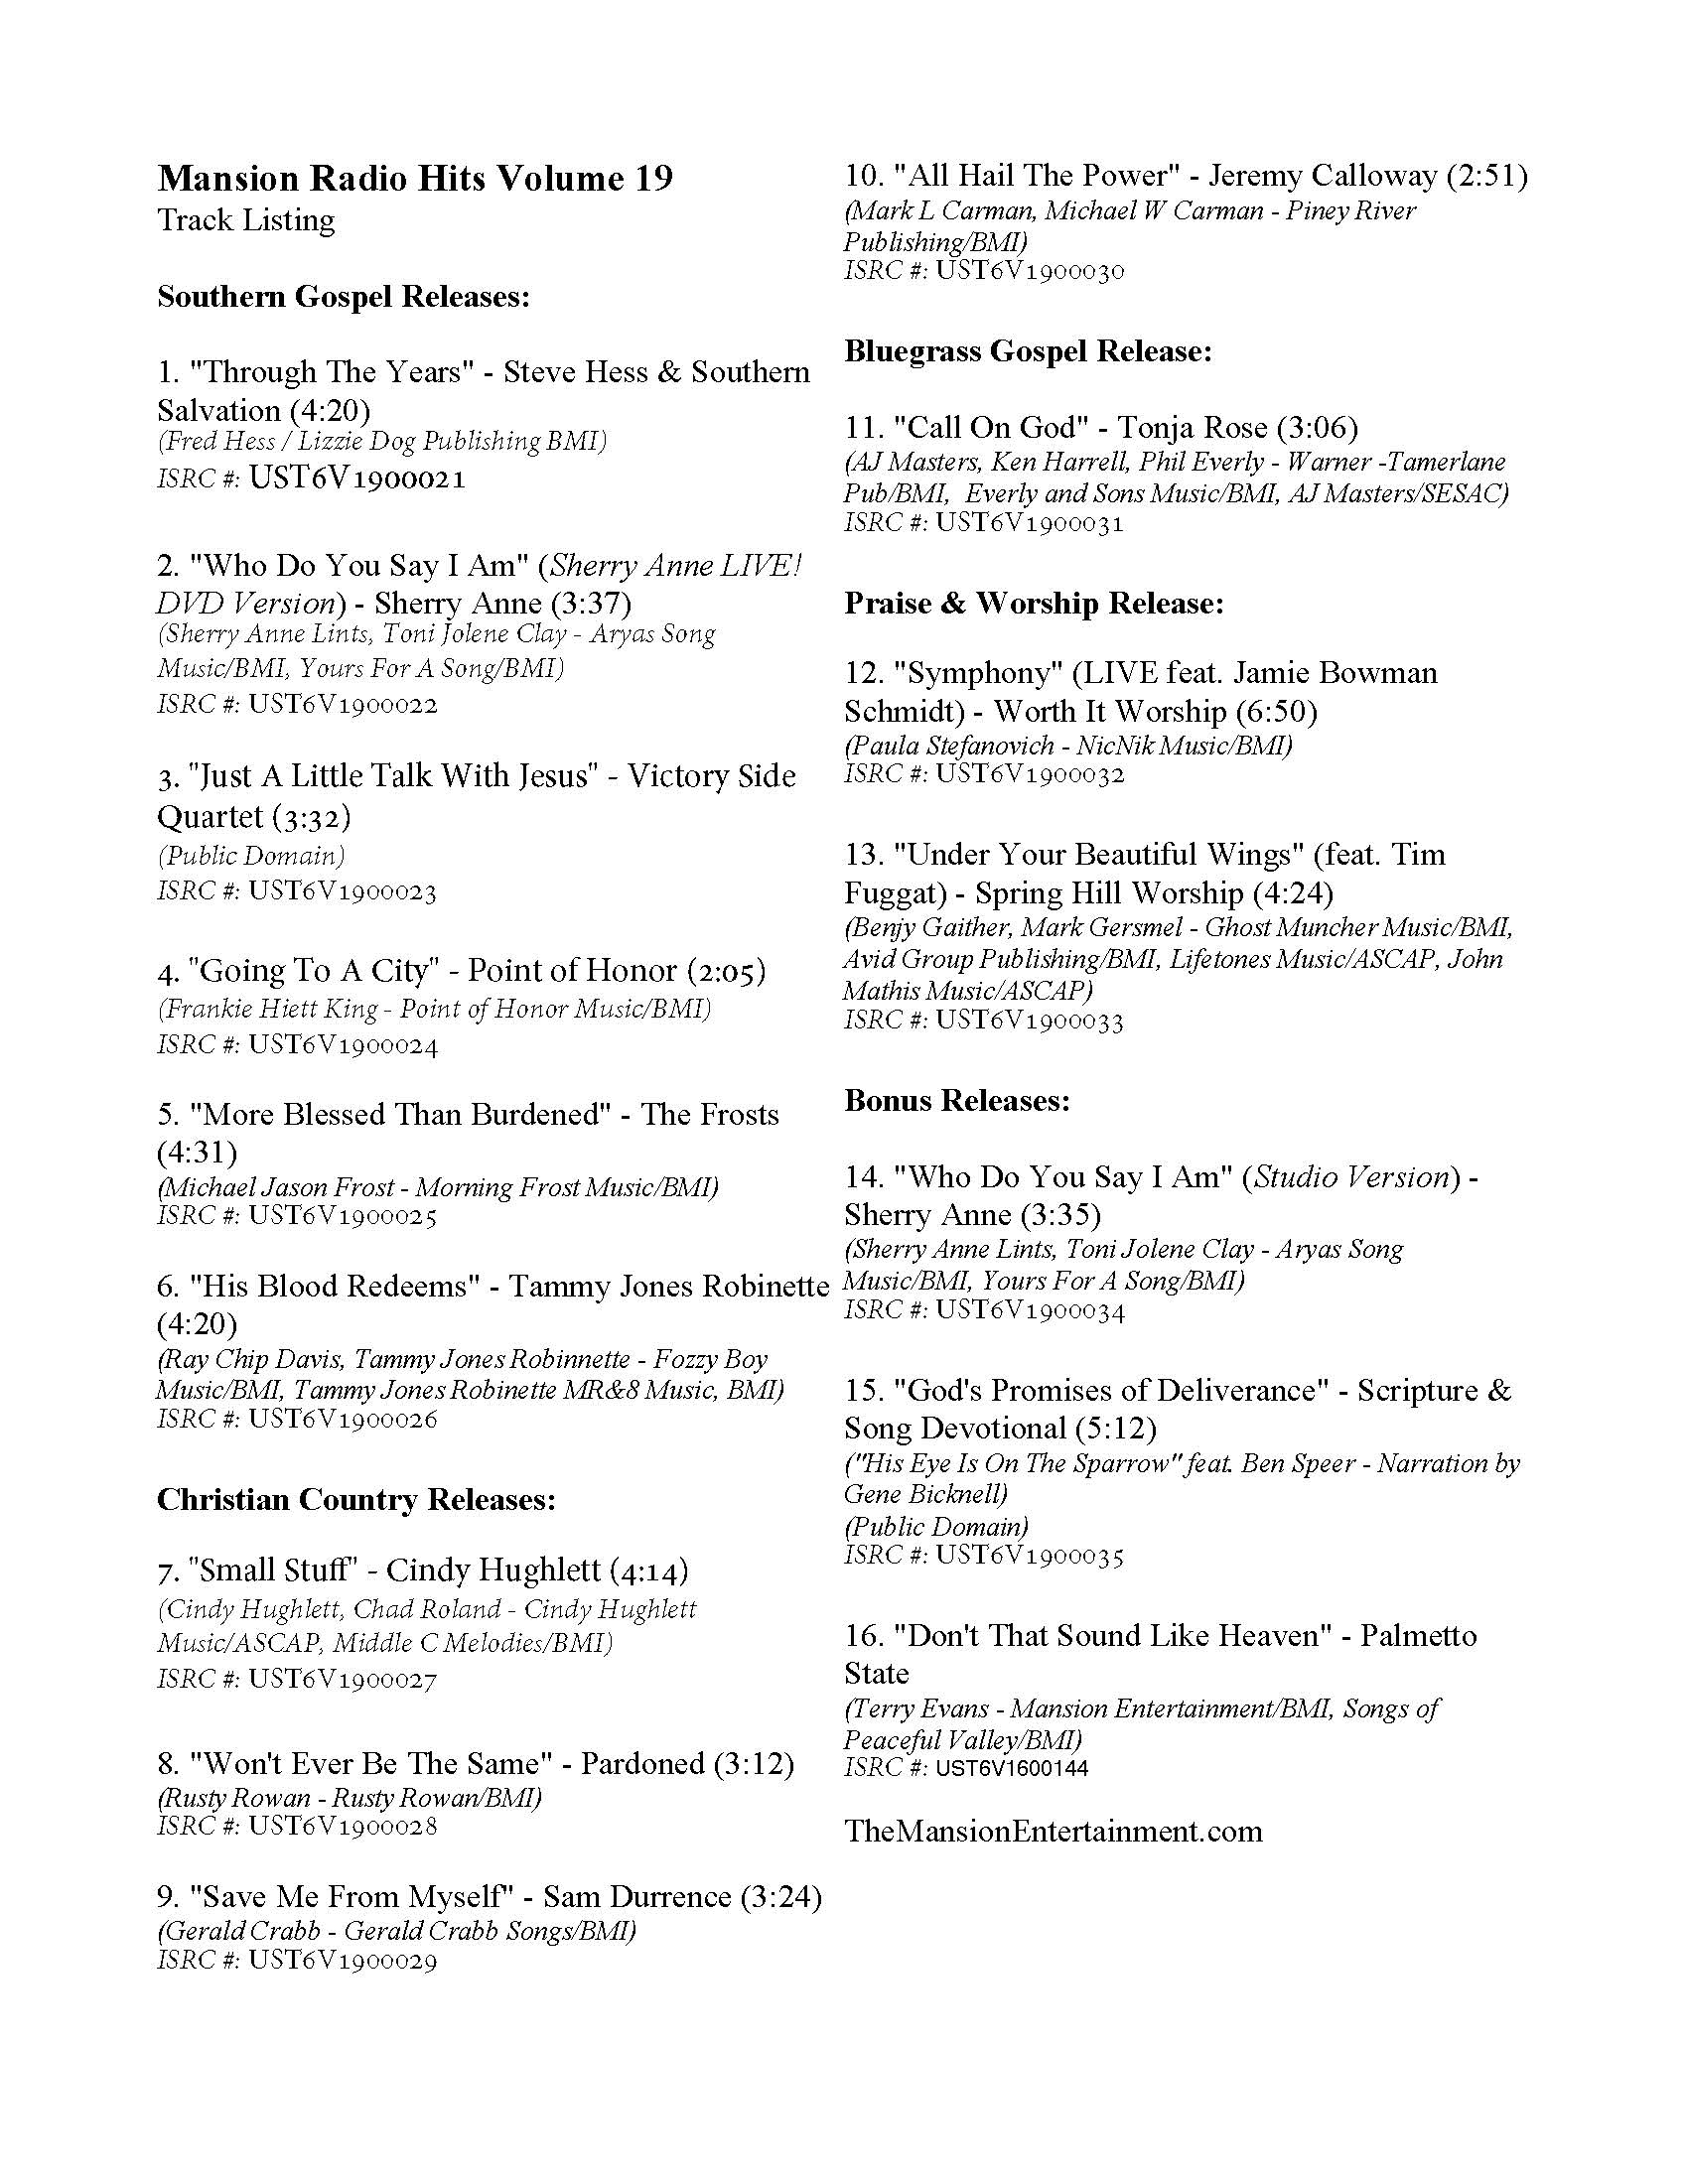 radio tracking sheet, cue sheet, christian radio, christian music, southern gospel radio, bluegrass gospel radio, singing news top 80, christian country music, cashbox country christian chart, praise and worship, praise chart, top 100, worship music, ccm, contemporary christian